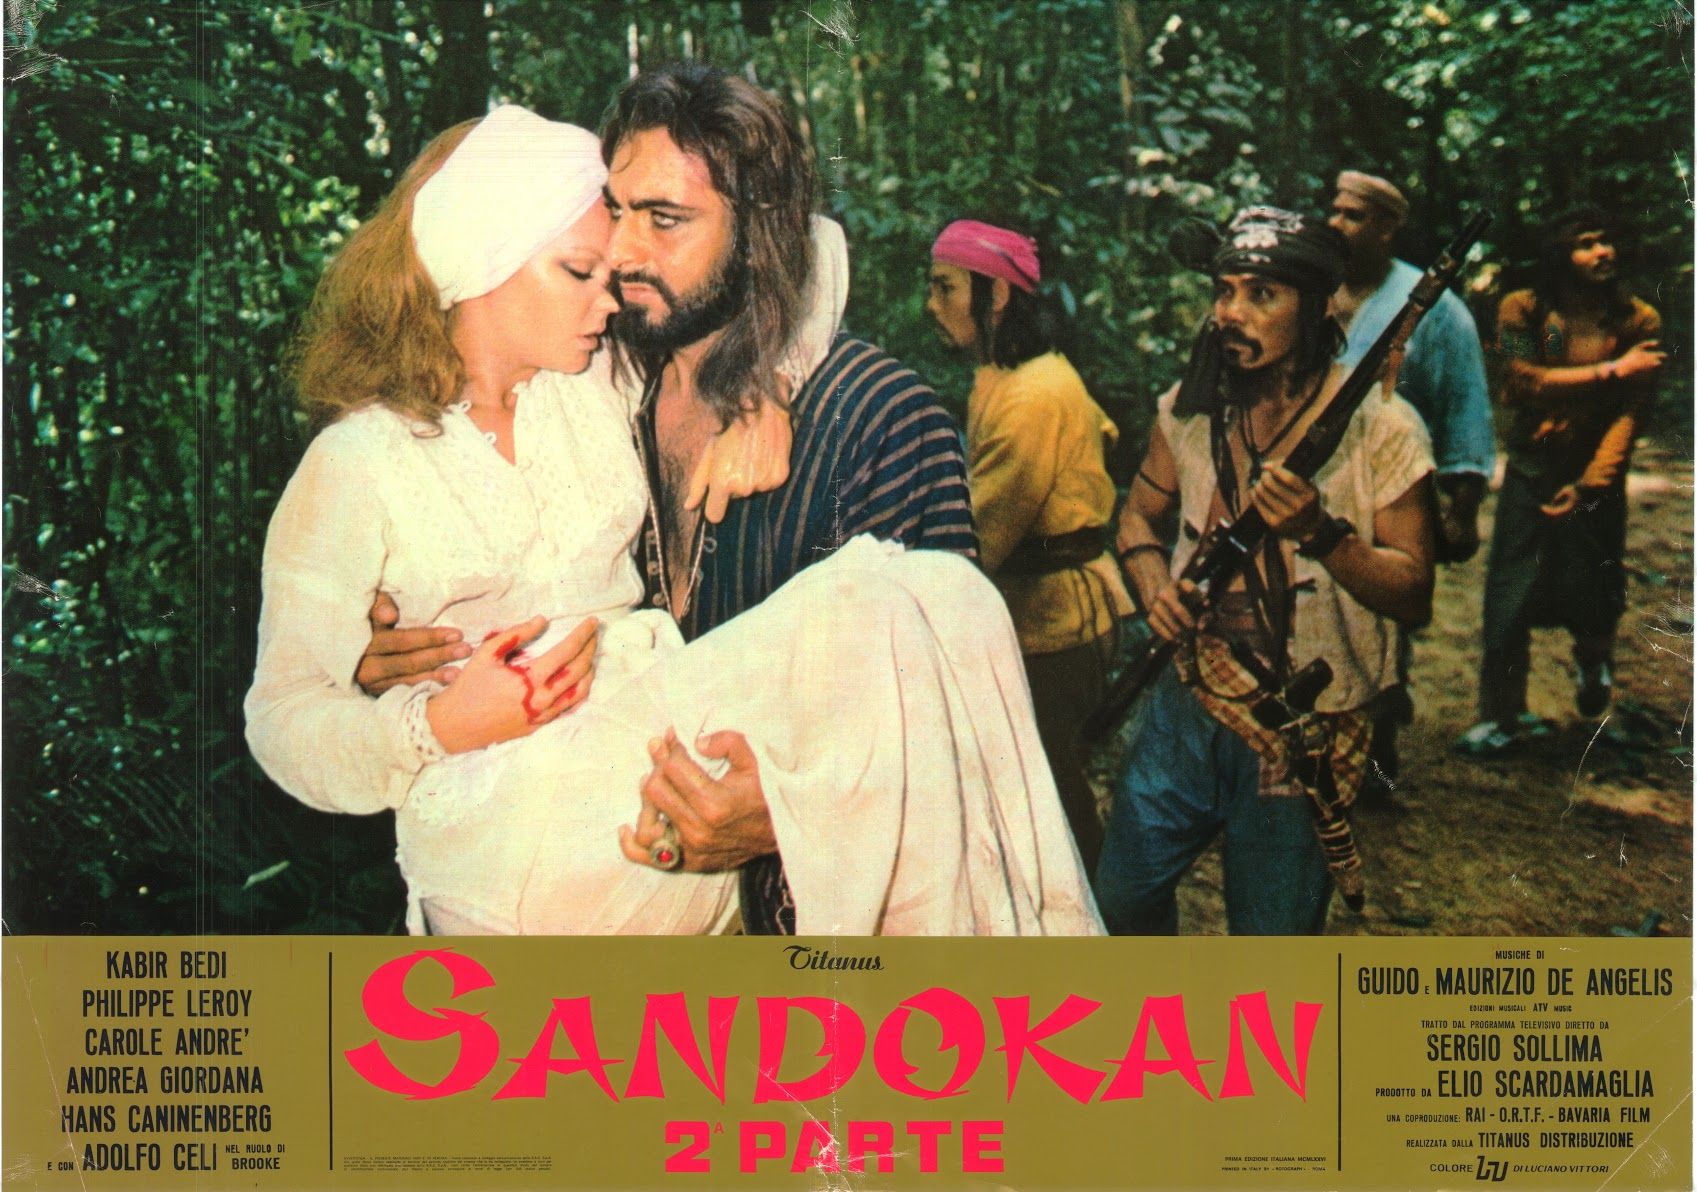 POSTER SANDOKAN carrying MARIANNA 1